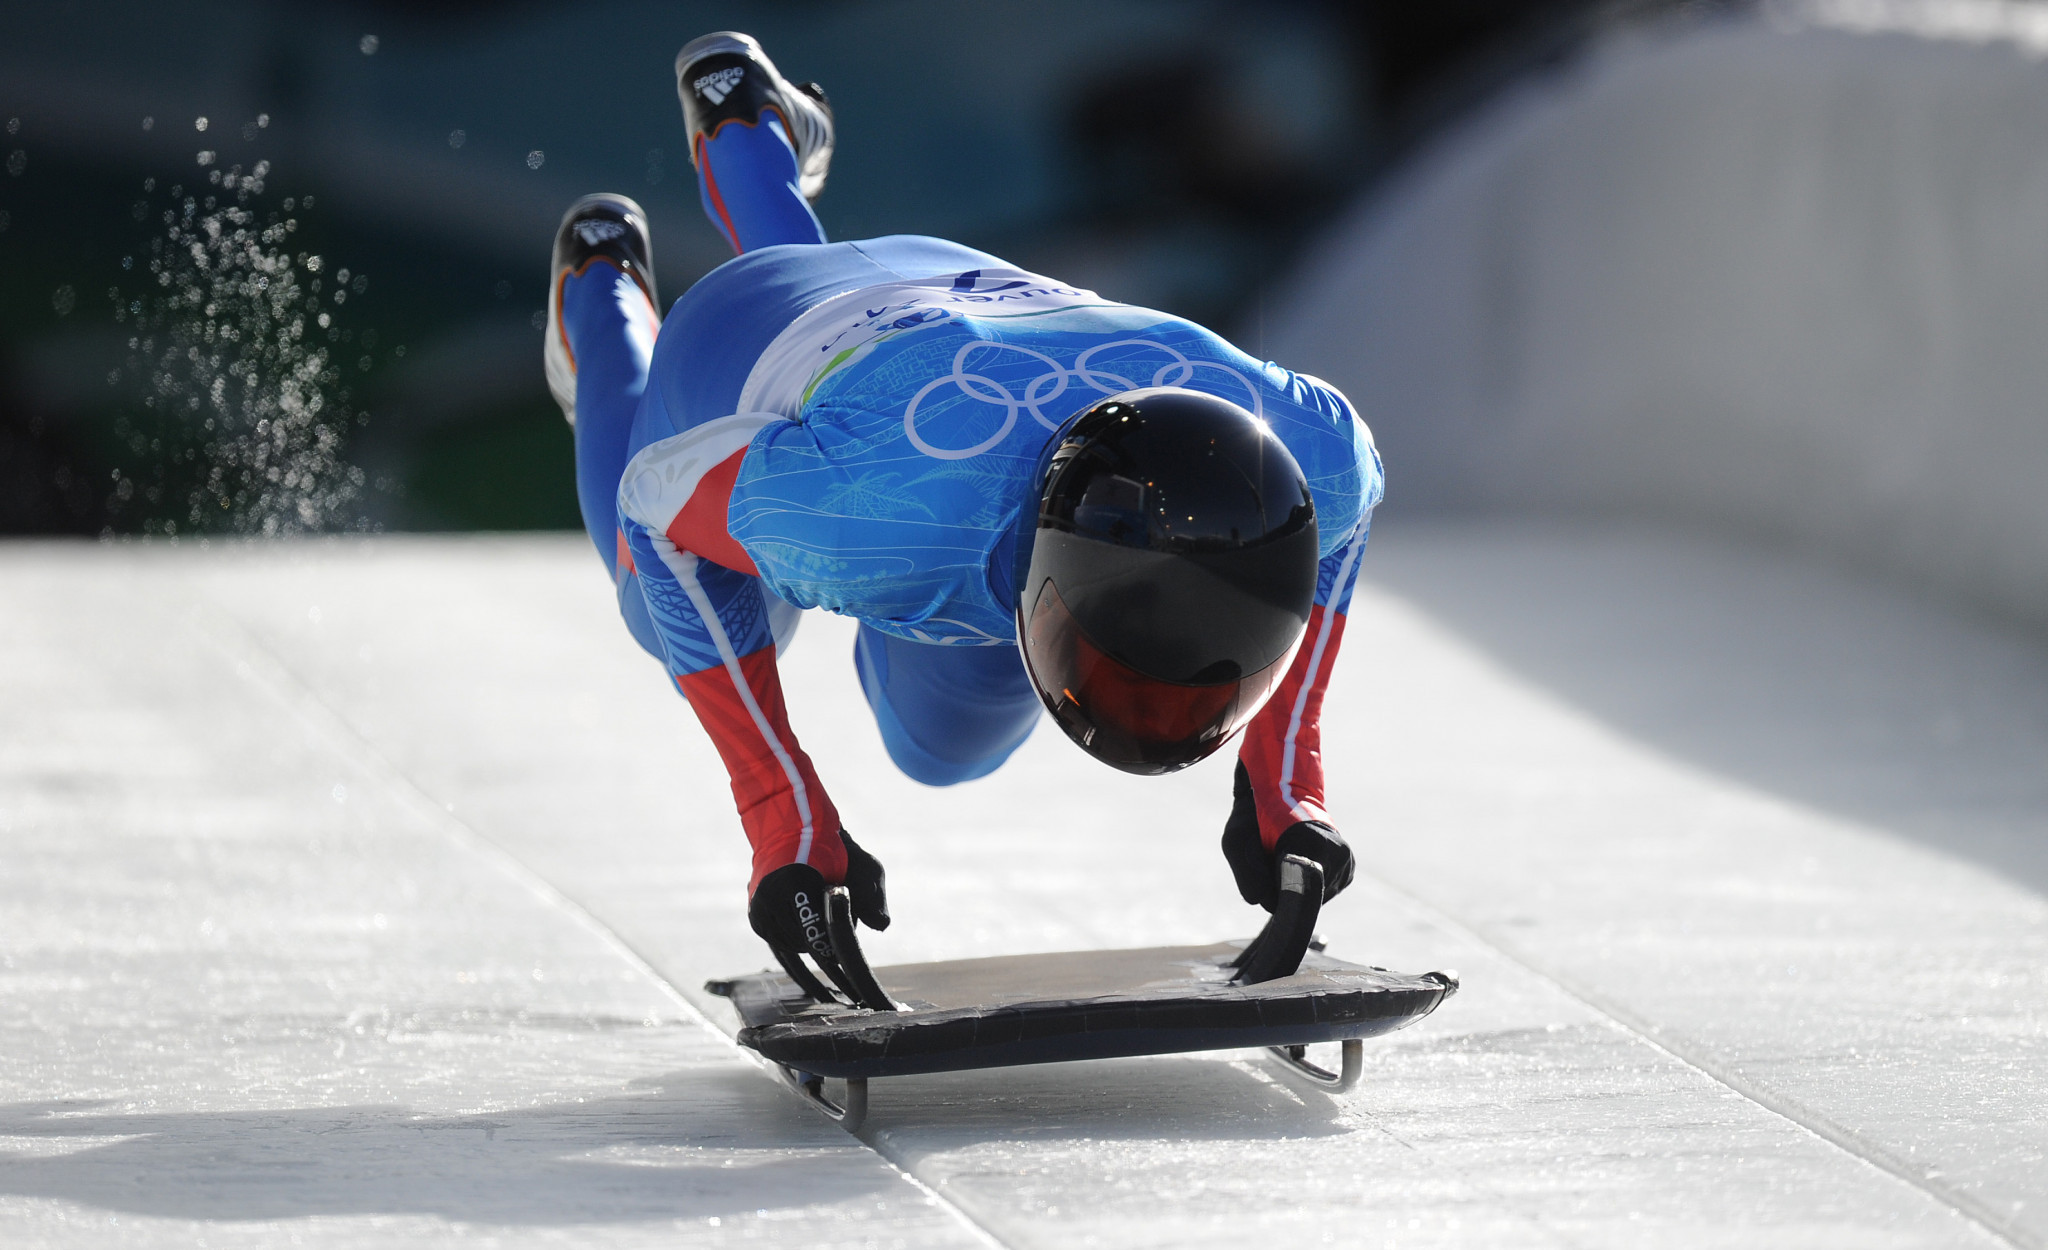 Olympic skeleton champion Alexander Tretiakov is among the athletes from Russia barred from competing at Pyeongchang 2018 following an unsuccessful appeal to the Court of Arbitration for Sport ©Getty Images